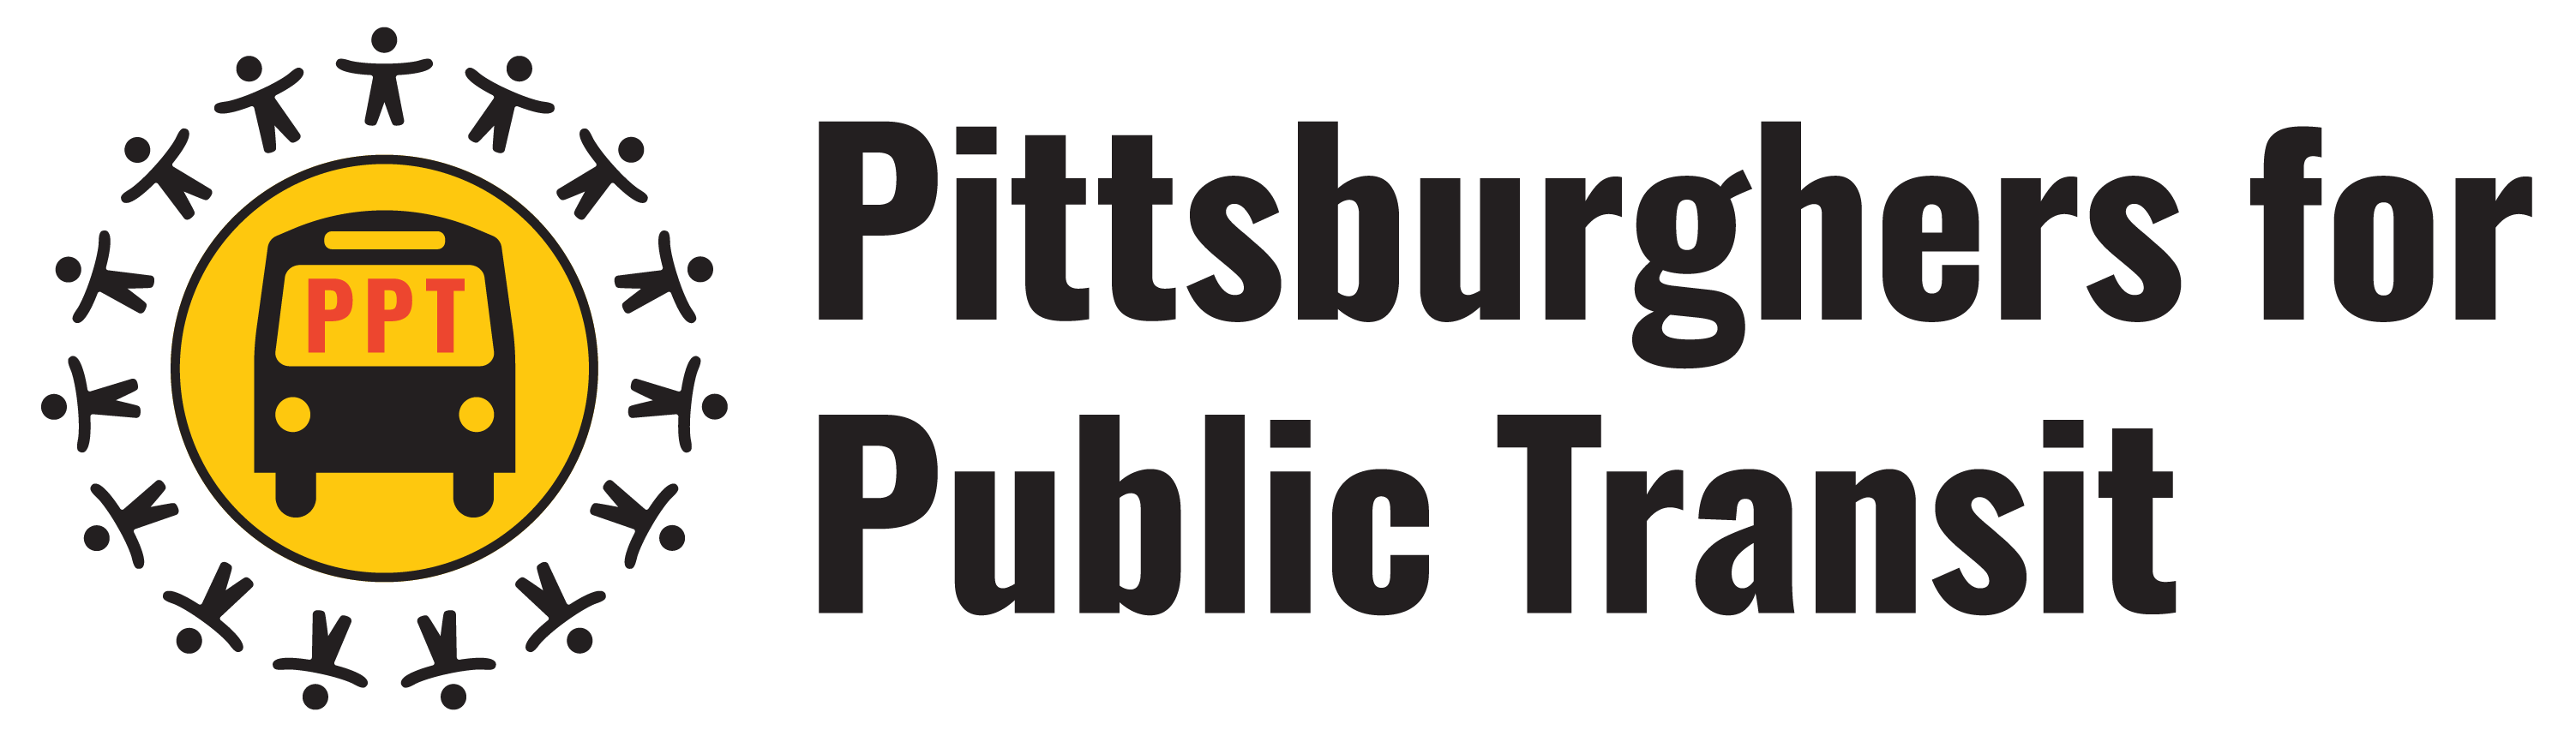 Pittsburghers for Public Transit Logo